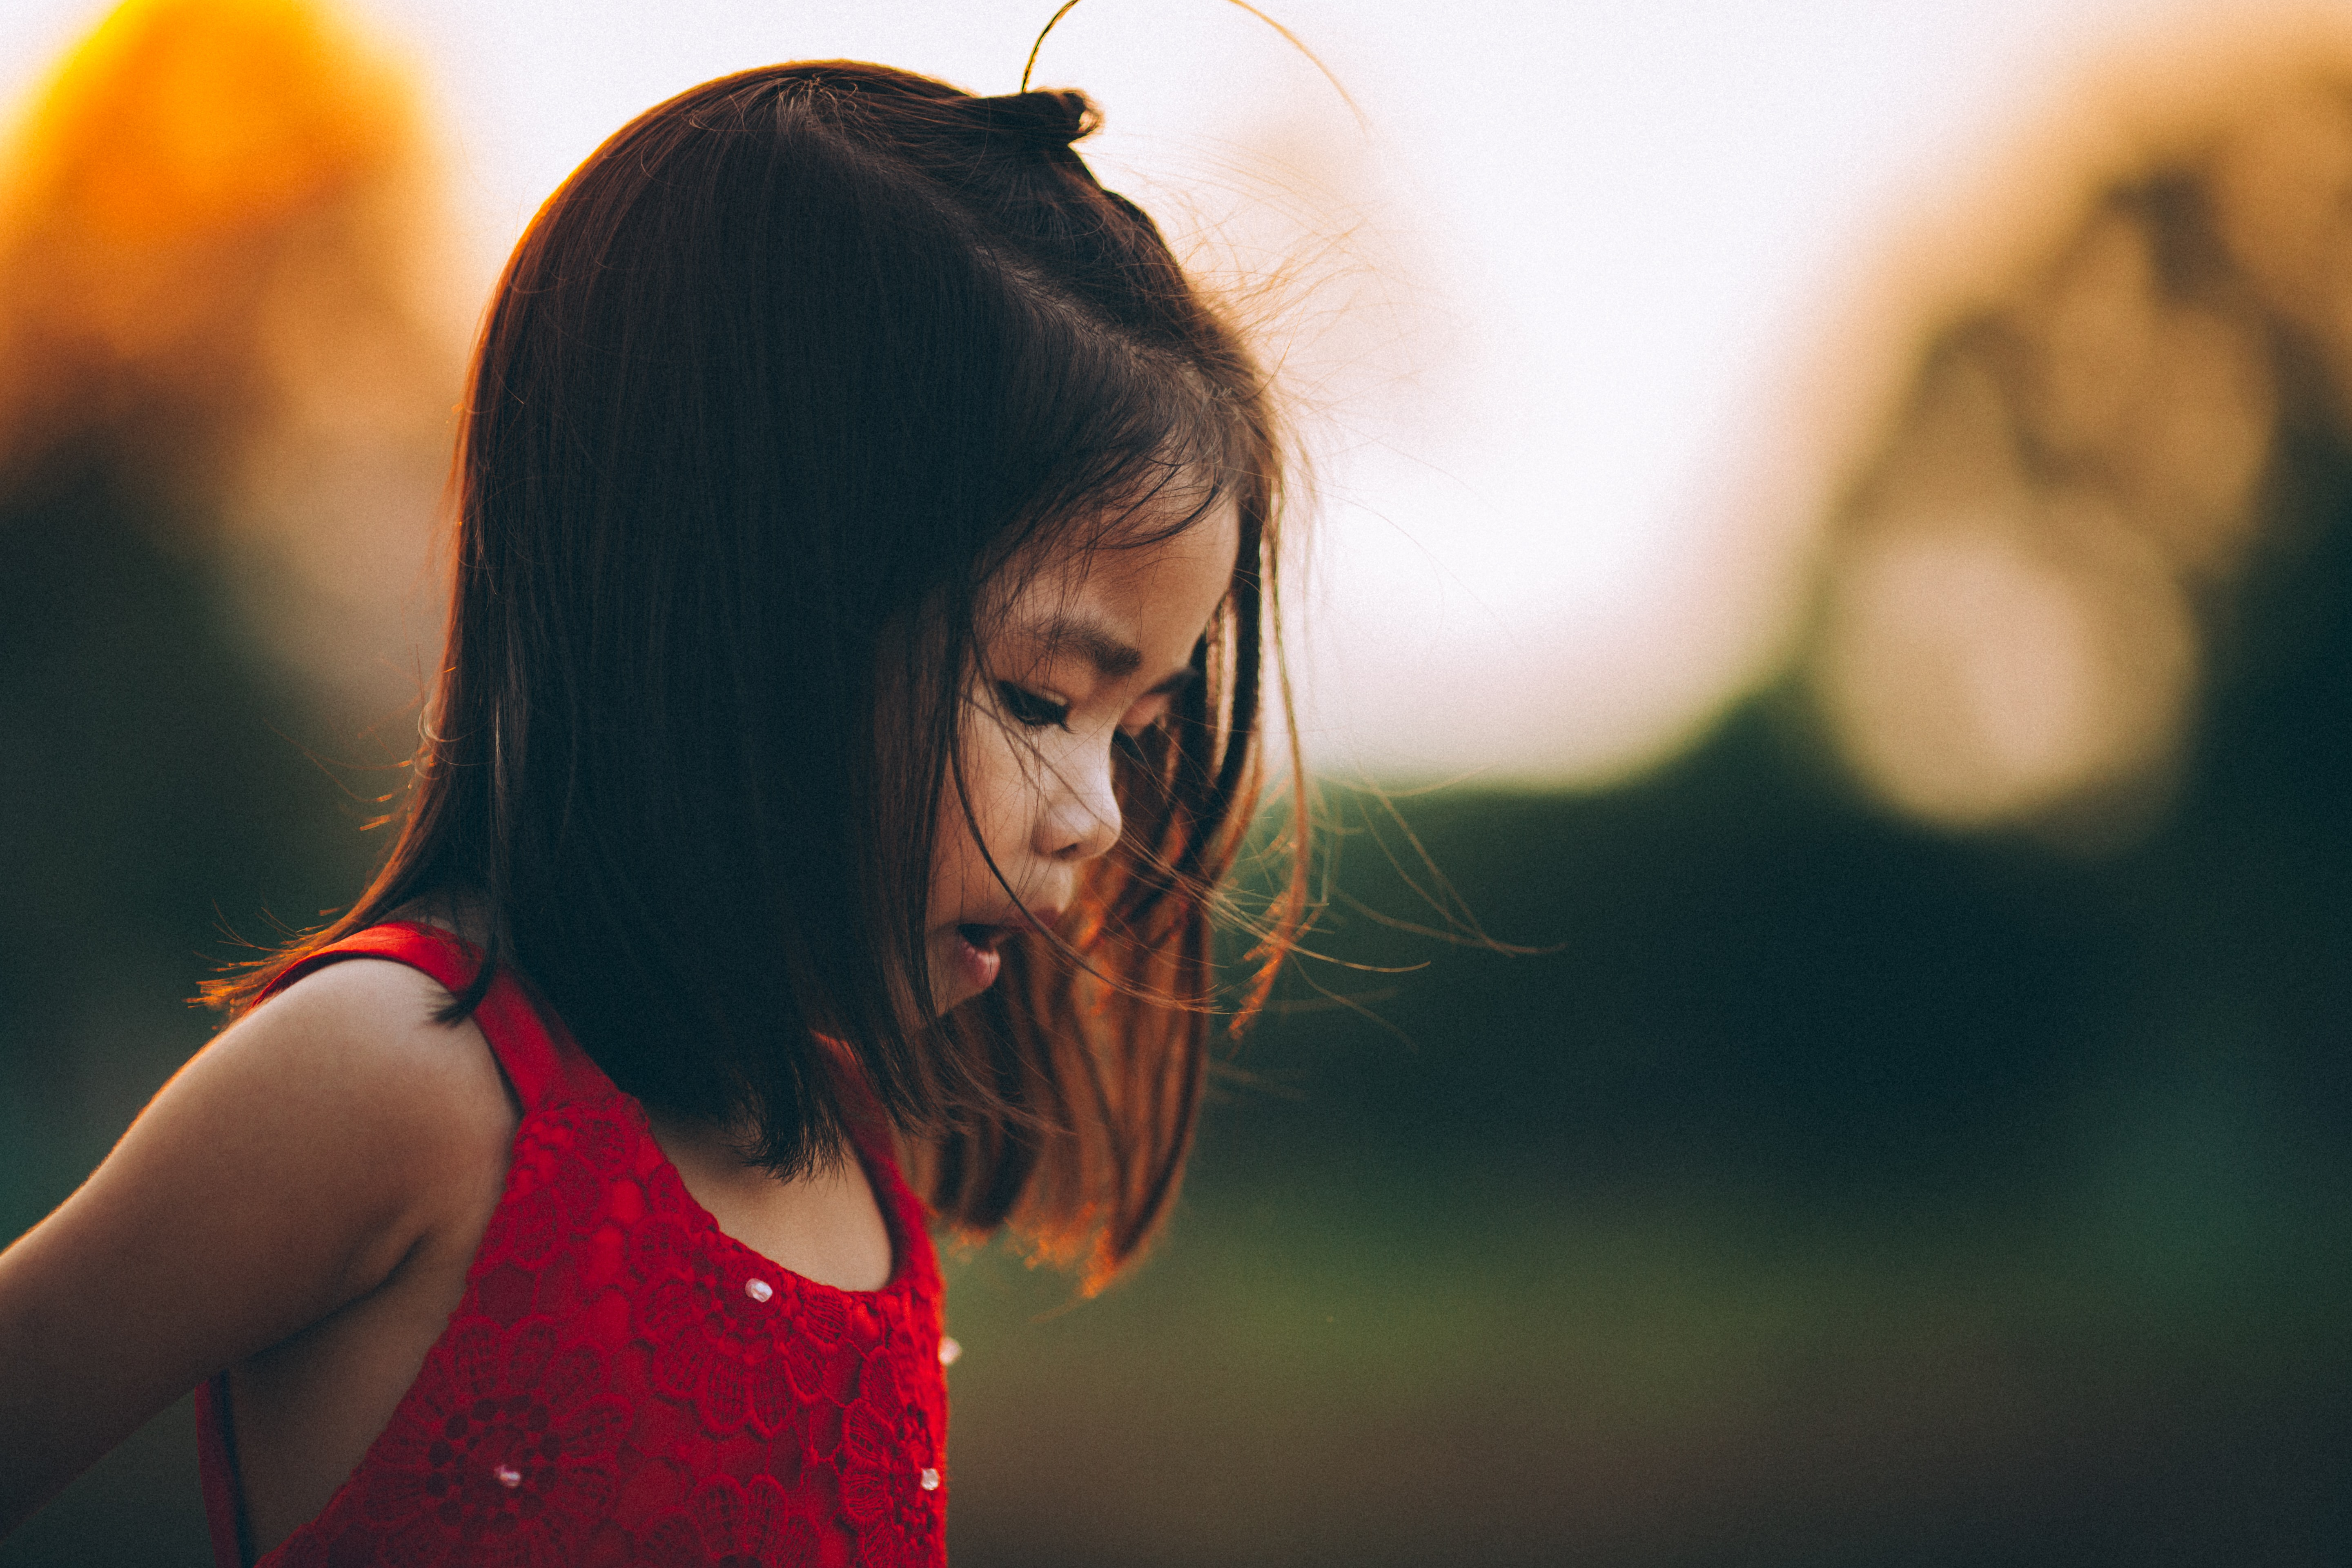 A little girl with a ponytail wearing a red dress